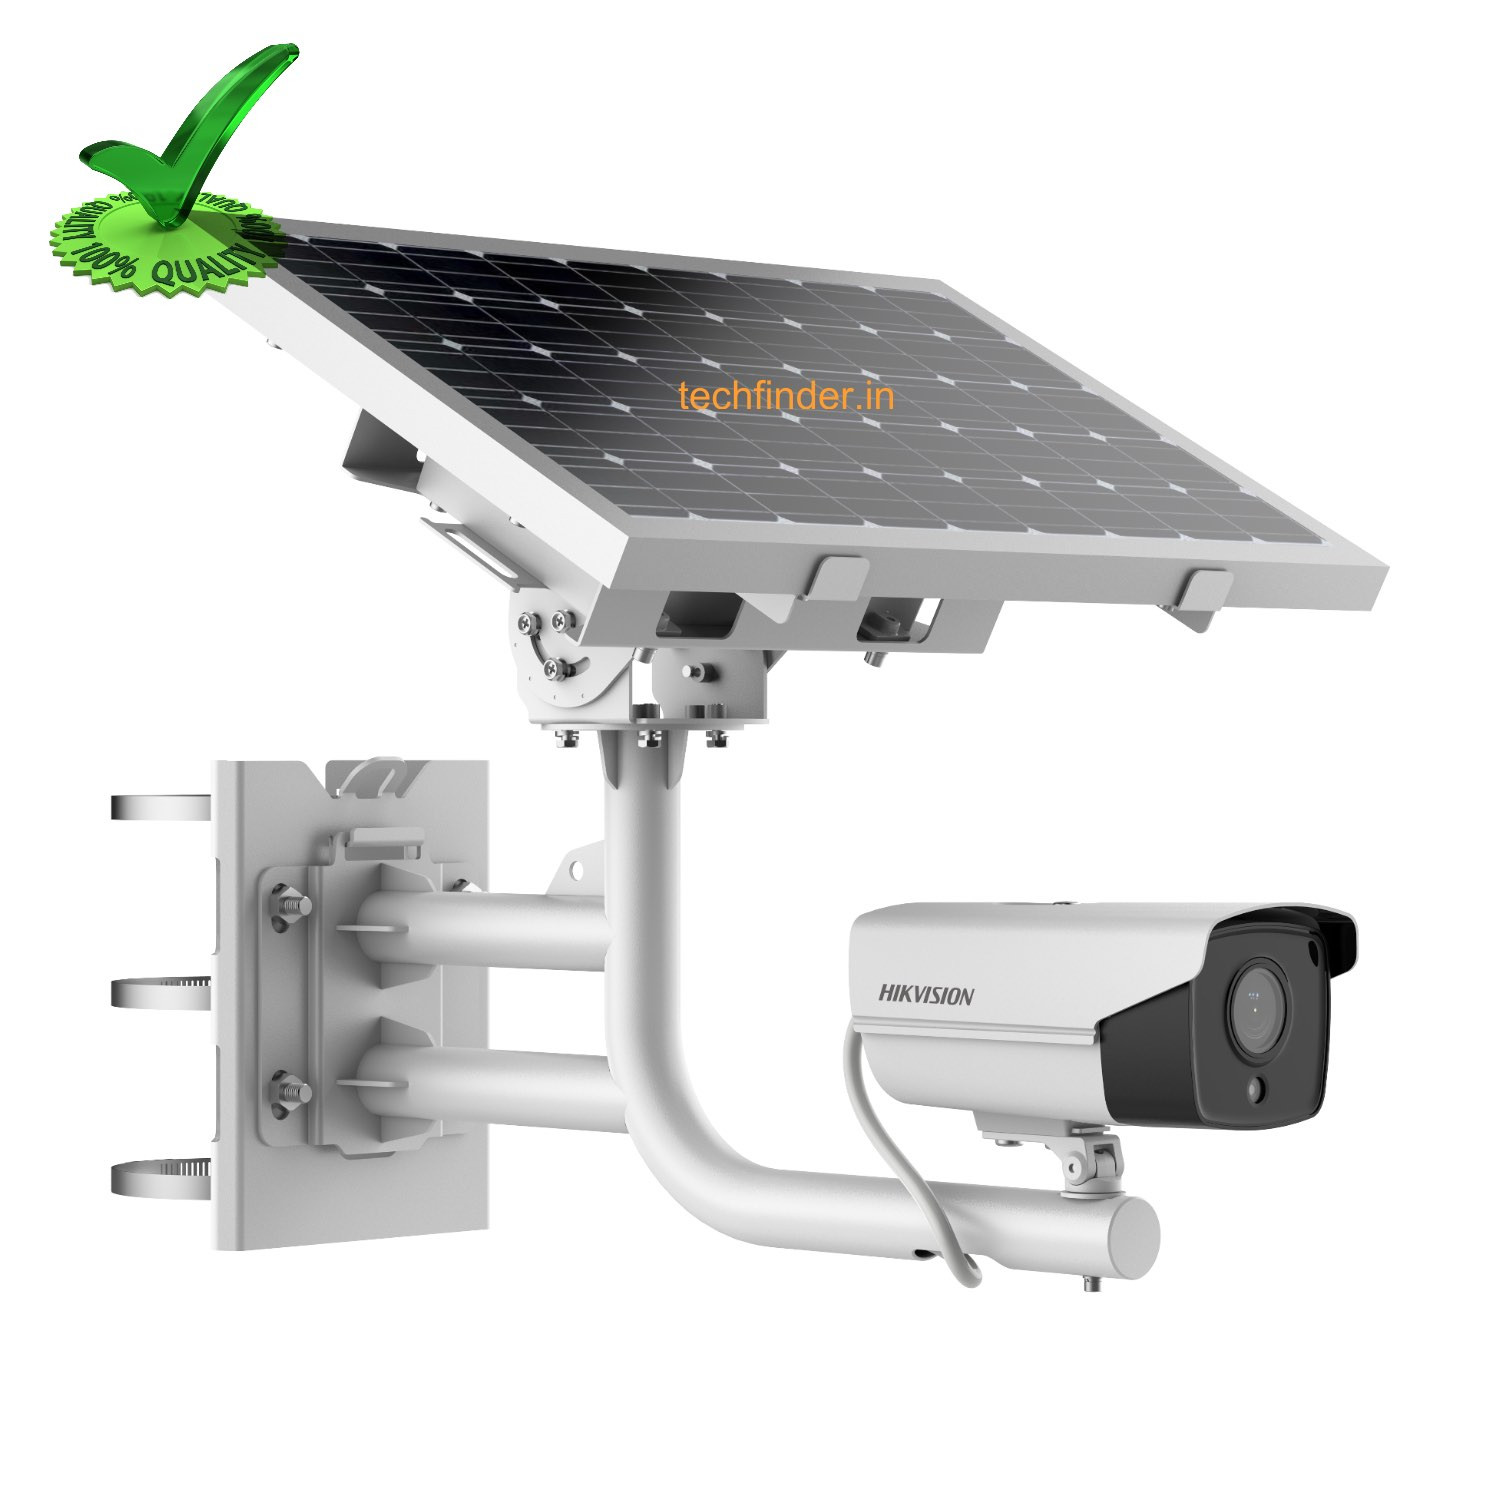 Hikvision DS-2XS6A25G0-I/CH20S40 Solar Powered 4G Ip Camera